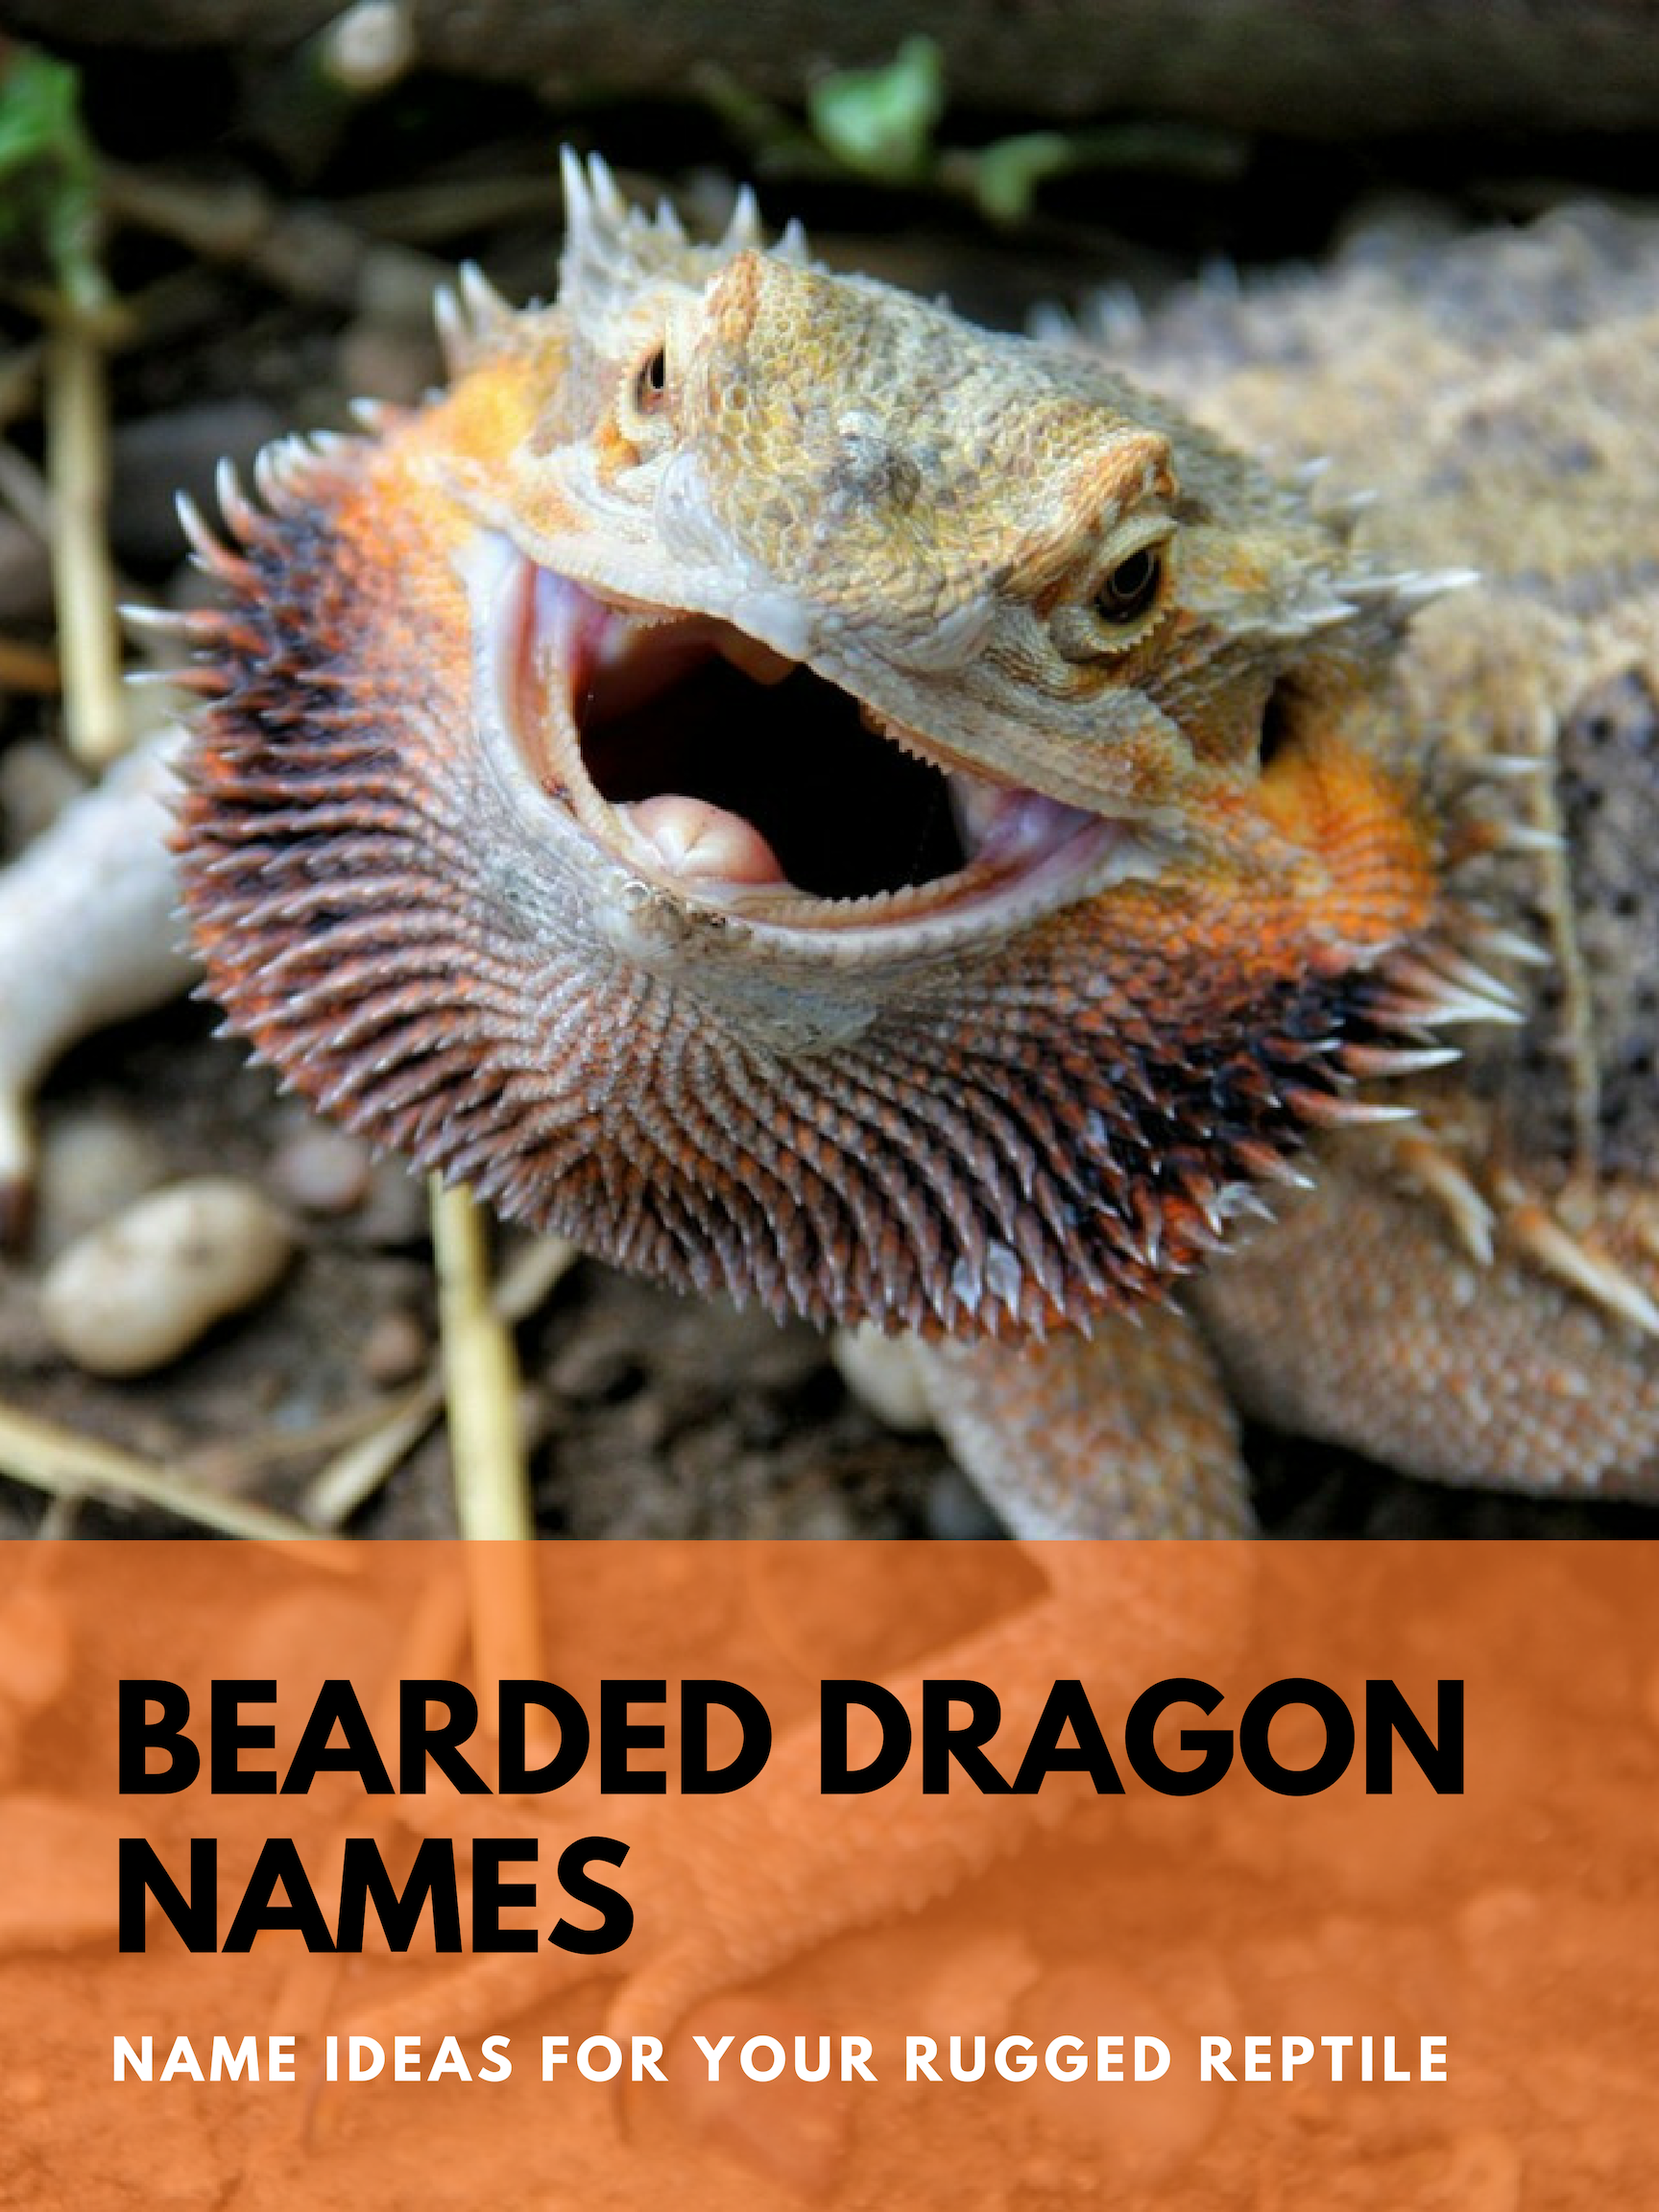 What Do I Name My Bearded Dragon